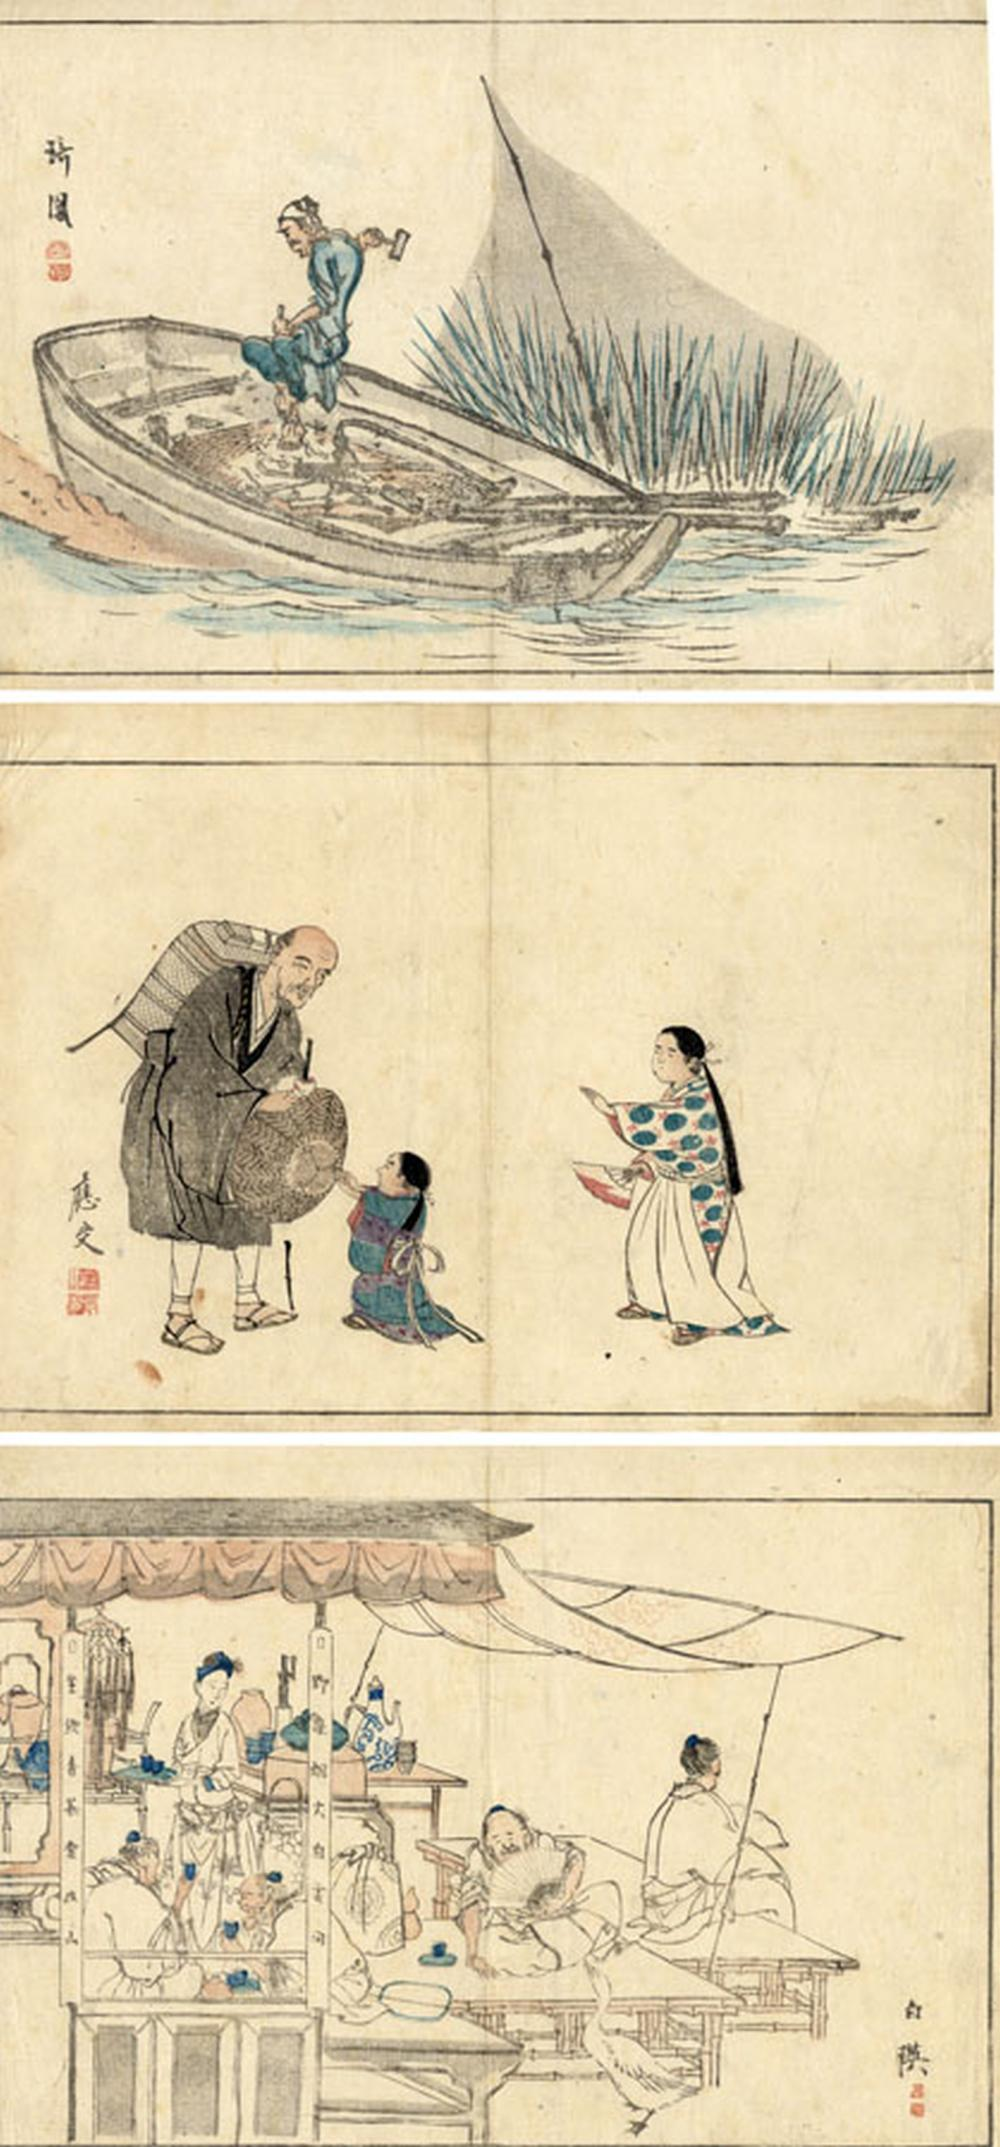 Japanese Woodblock Print, Mixed lot, three album pages approx. 25.5 x 36 cm, album 1814